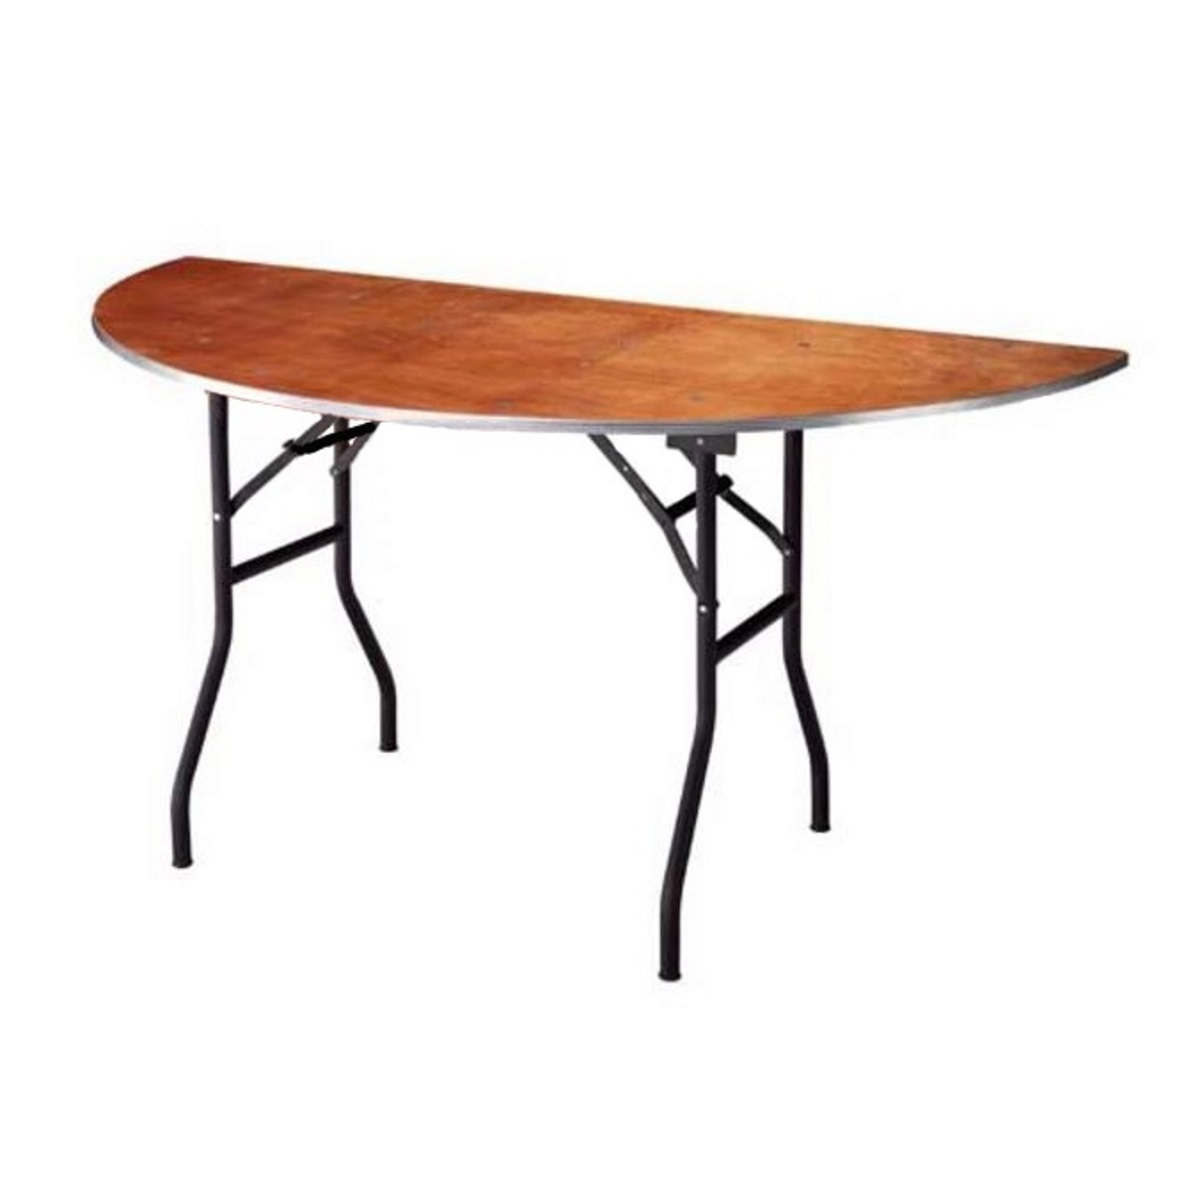 Demie table ronde bois1 1